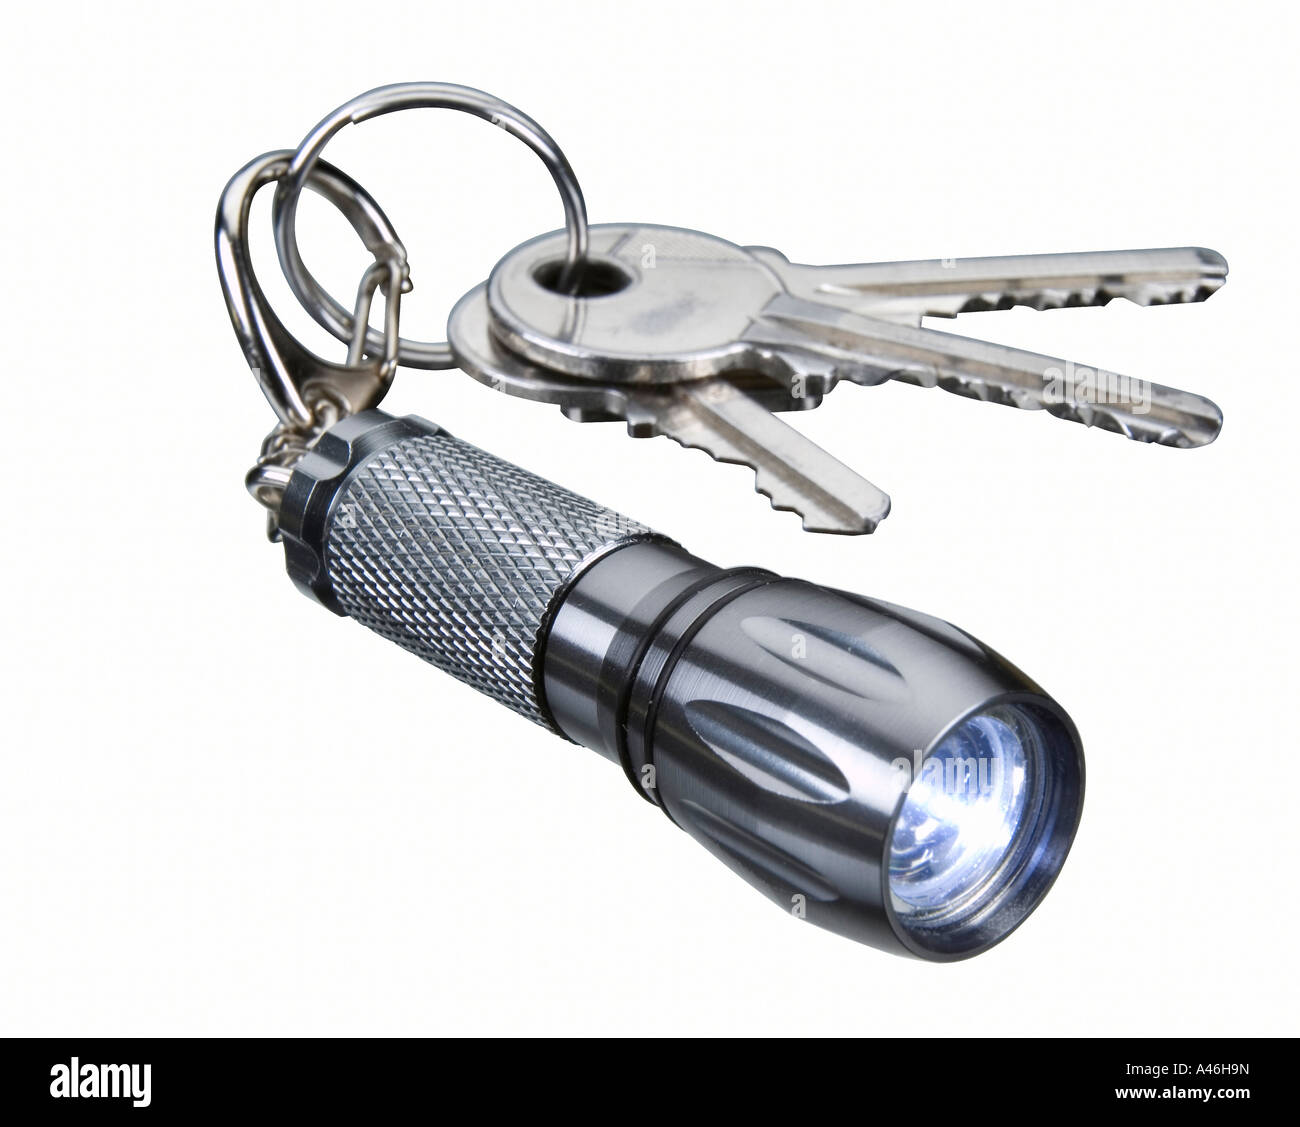 Keychain with a flashlight - Stock Image